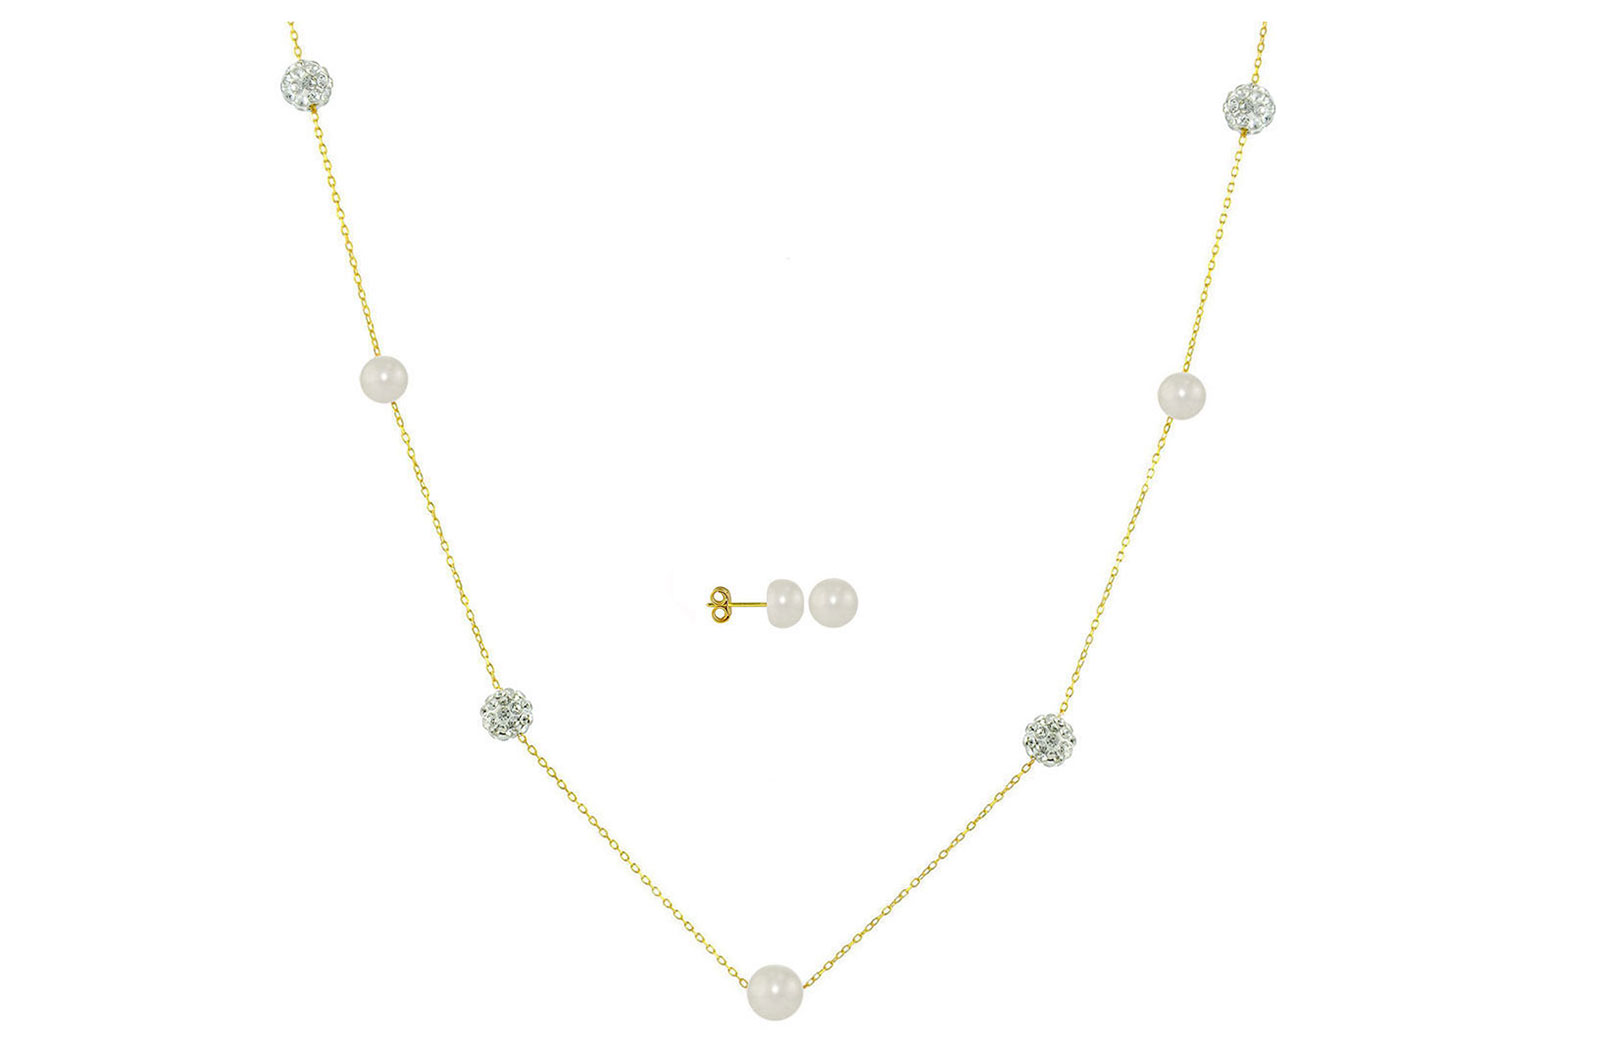 Vera Perla 18K Solid Gold Gradual Built-in 5-6mm White Pearls and Crystal Ball Jewelry Set - 2 pcs.